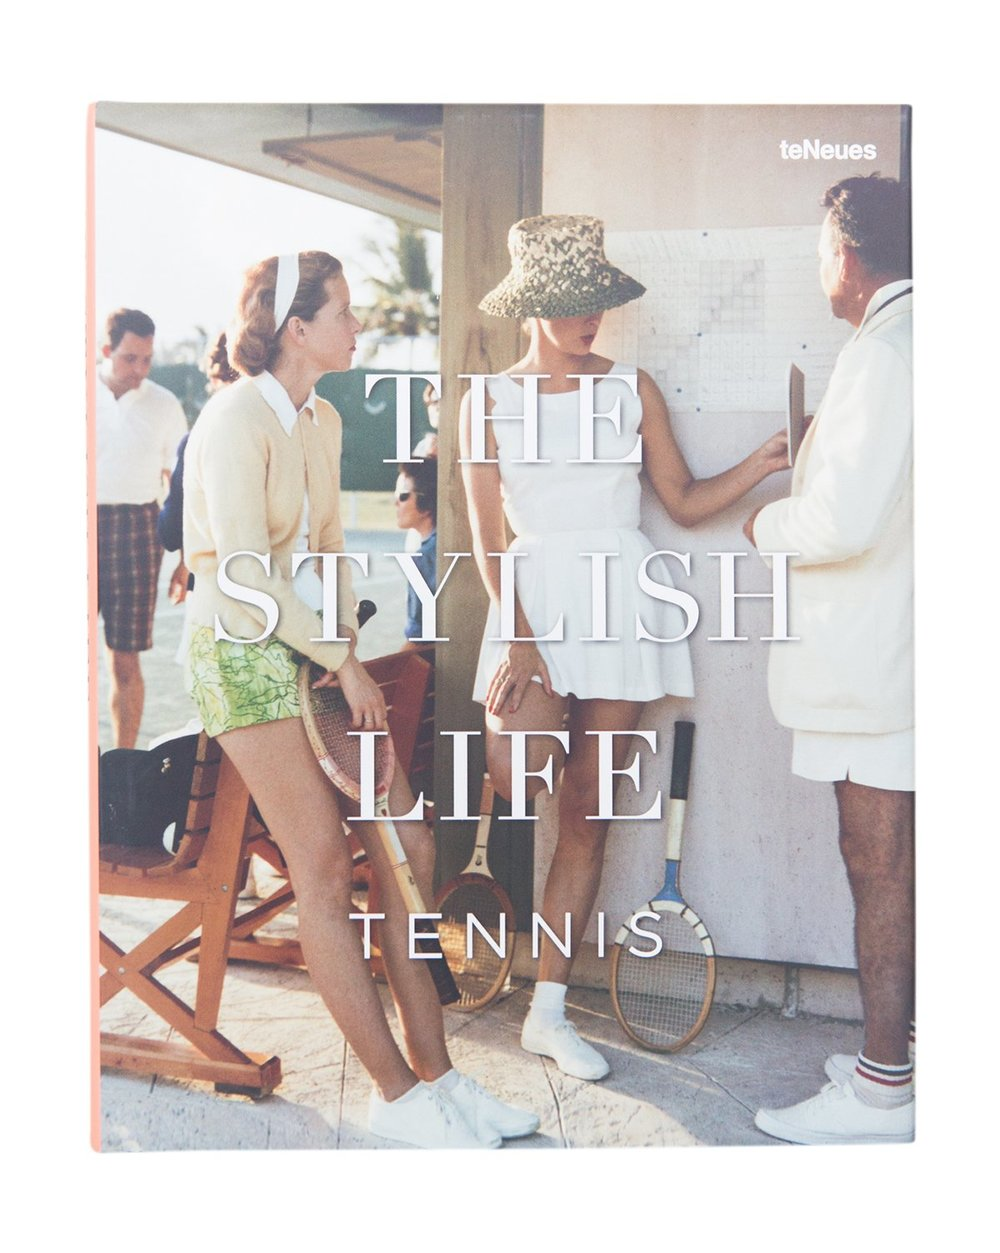 The_Stylish_Life_Tennis_1.jpg